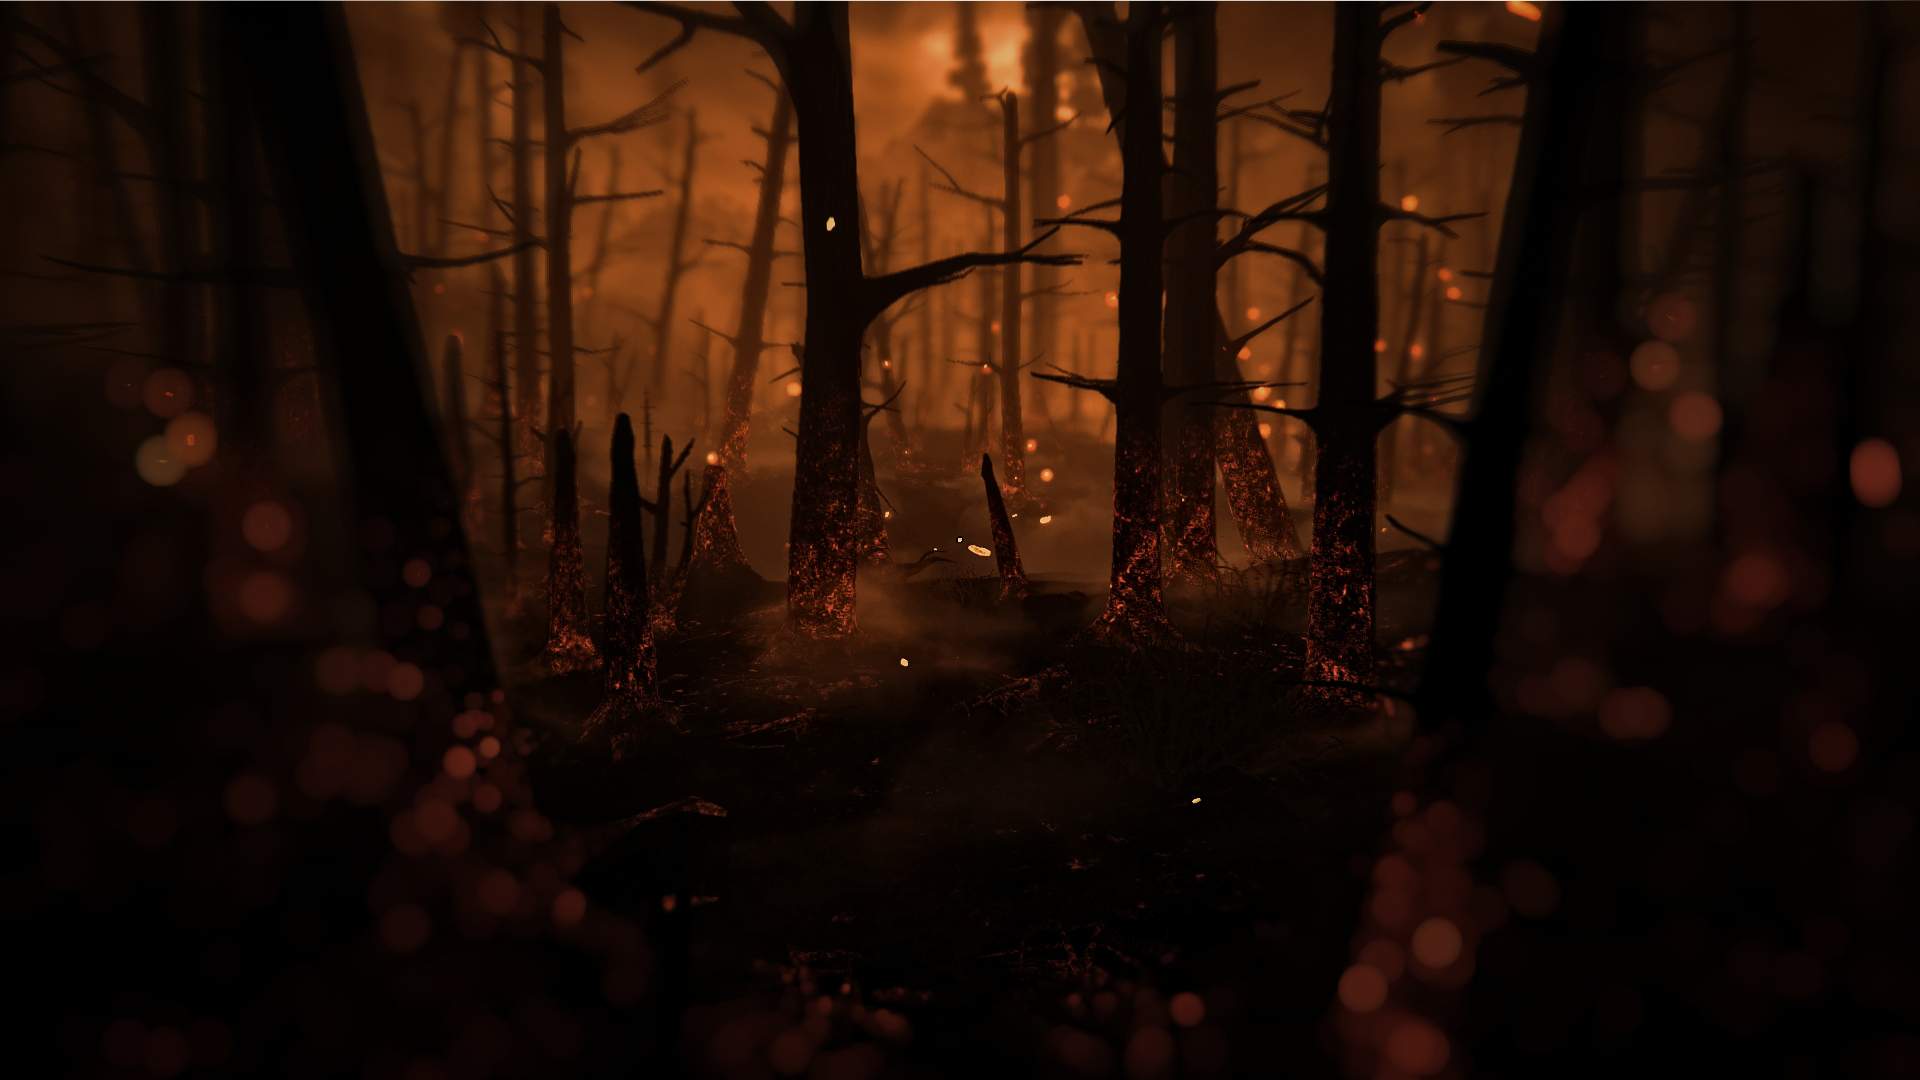 Find the best laptop for Kholat